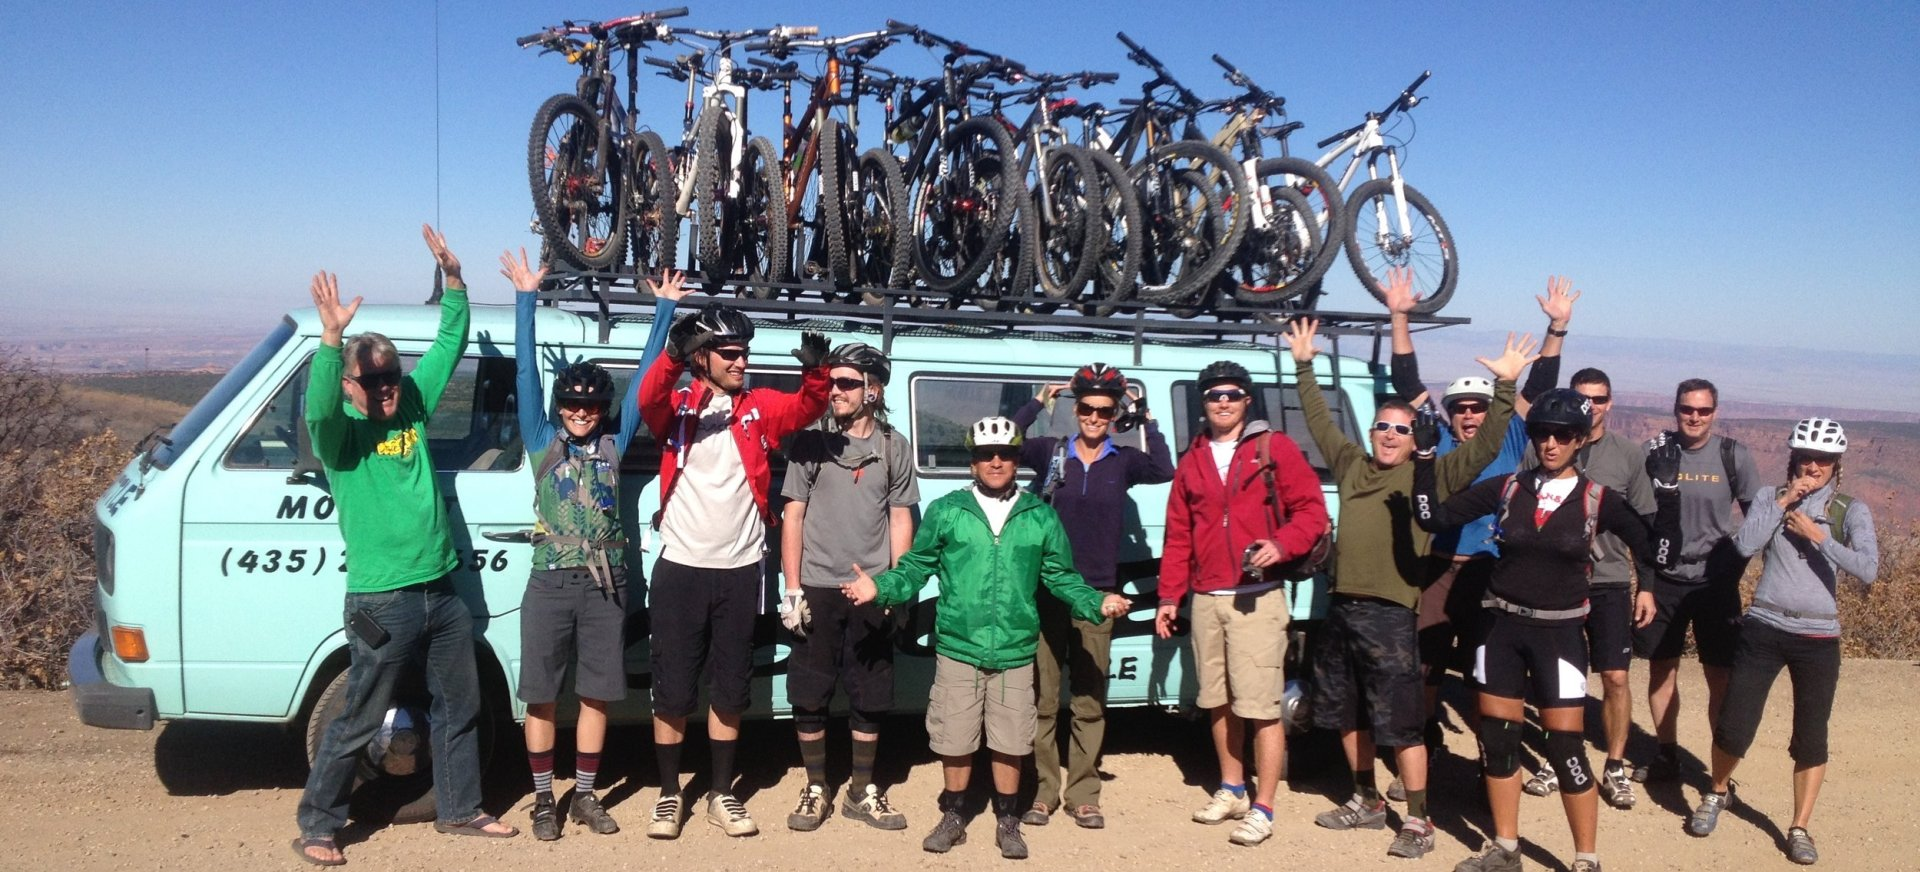 Bikers with green van in Moab